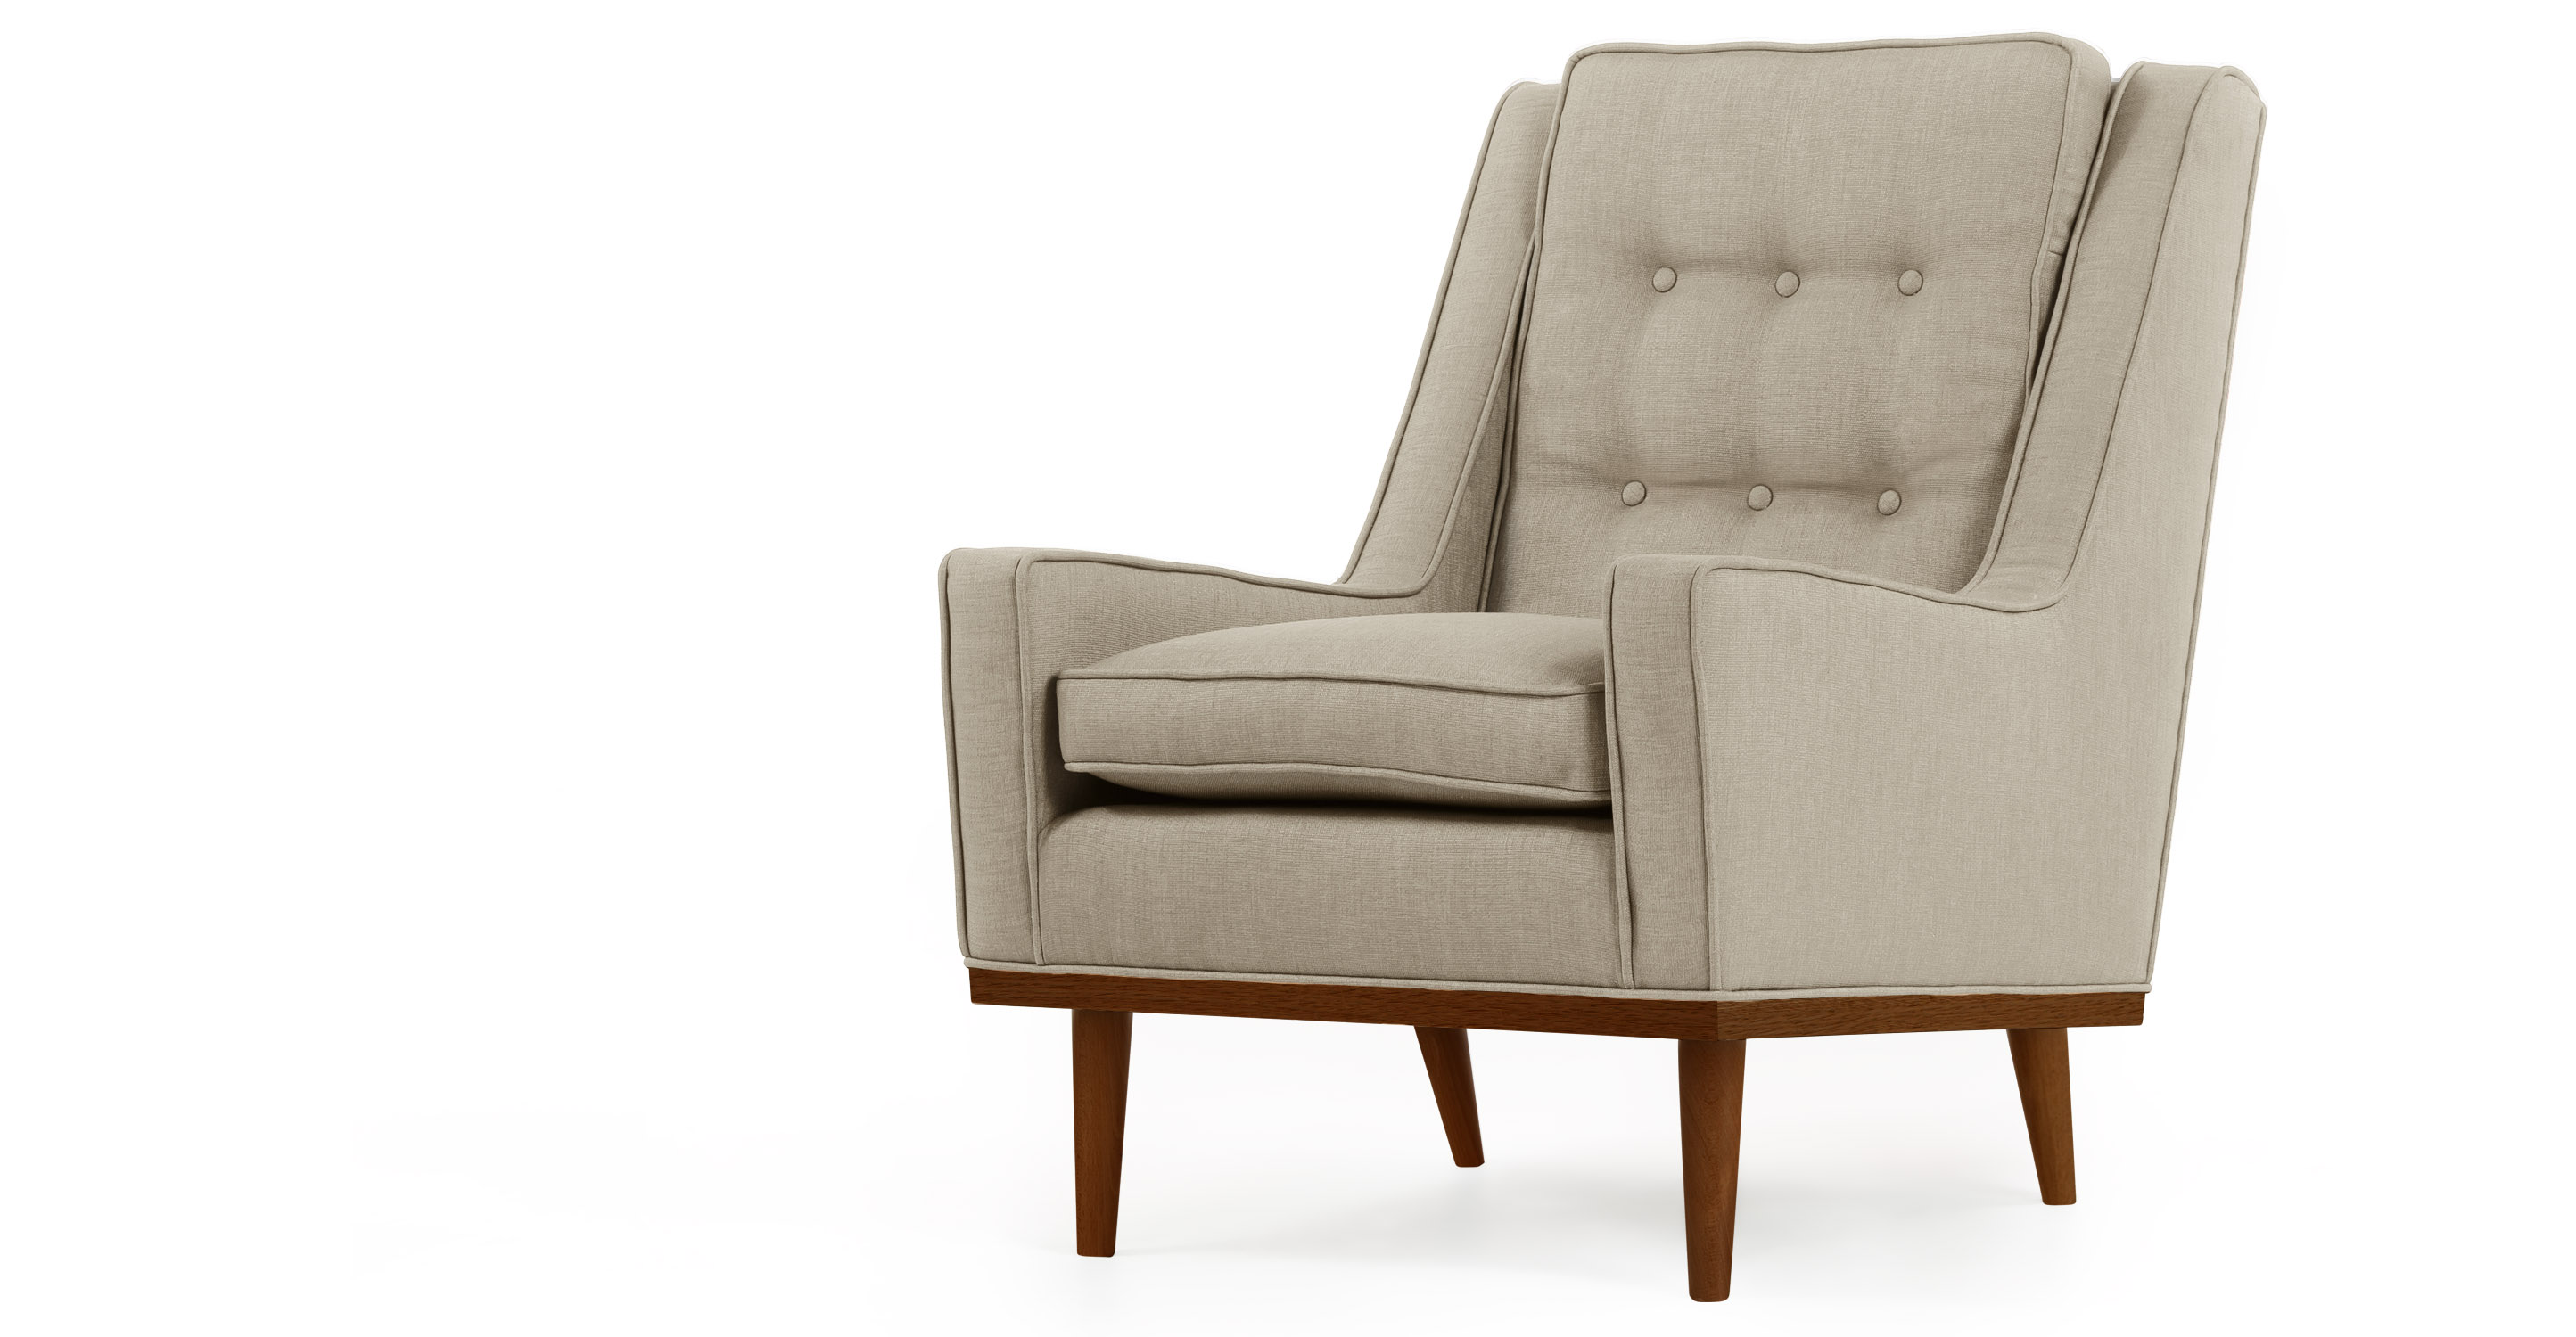 Scott Retro Armchair in calico beige | made.com